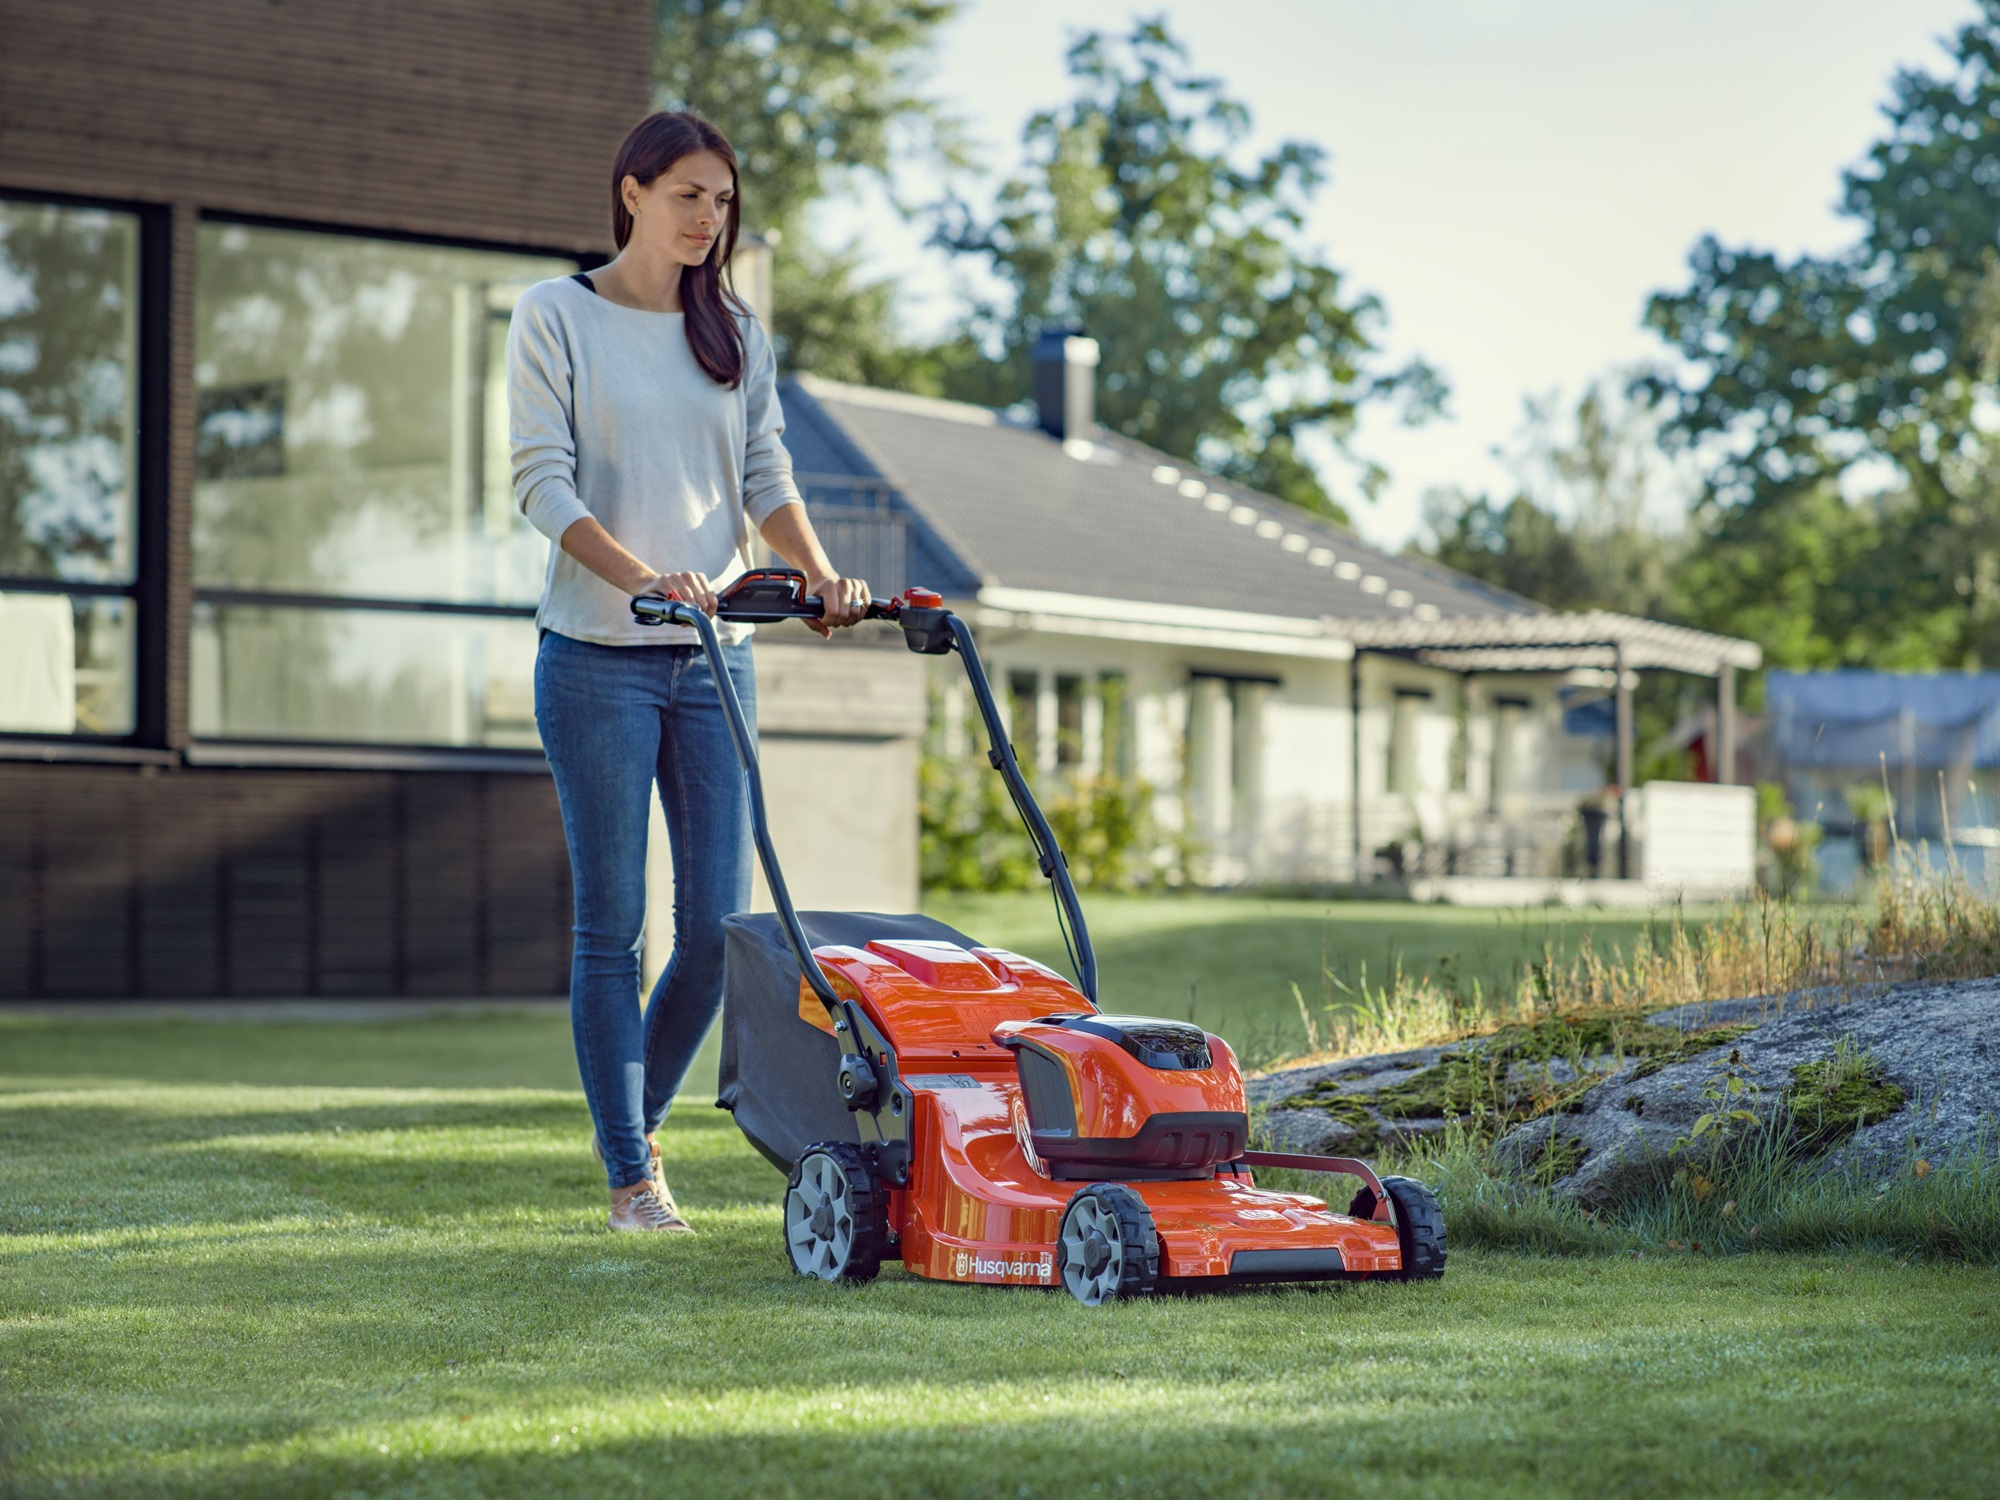 The Best Electric Lawn Mowers 2020